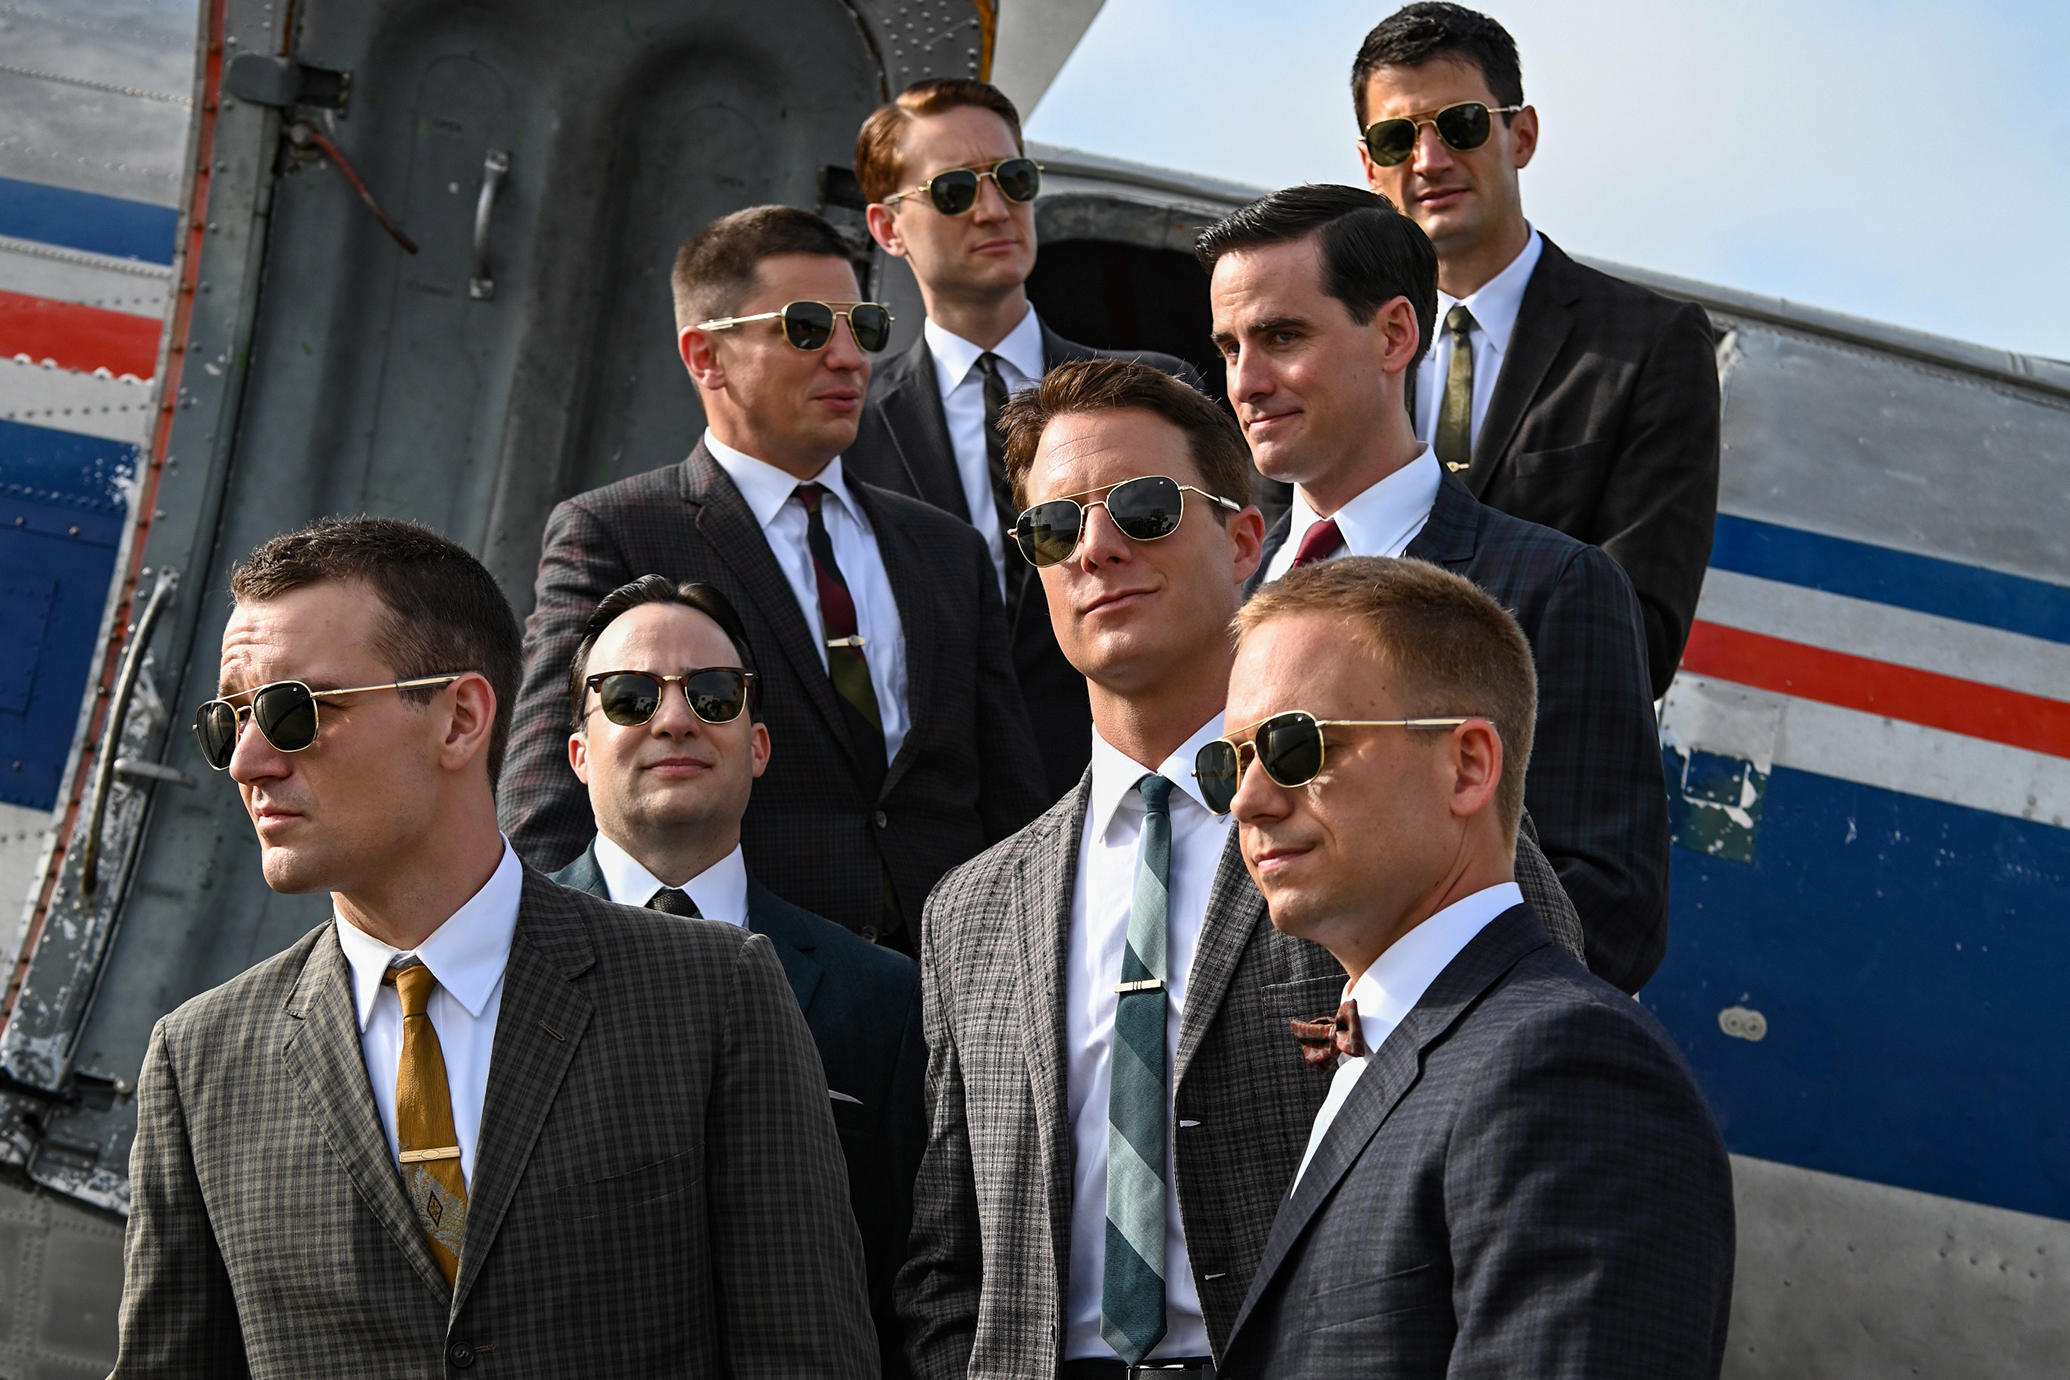 The Right Stuff: What To Expect From The Disney+ Adaptation | Den of Geek